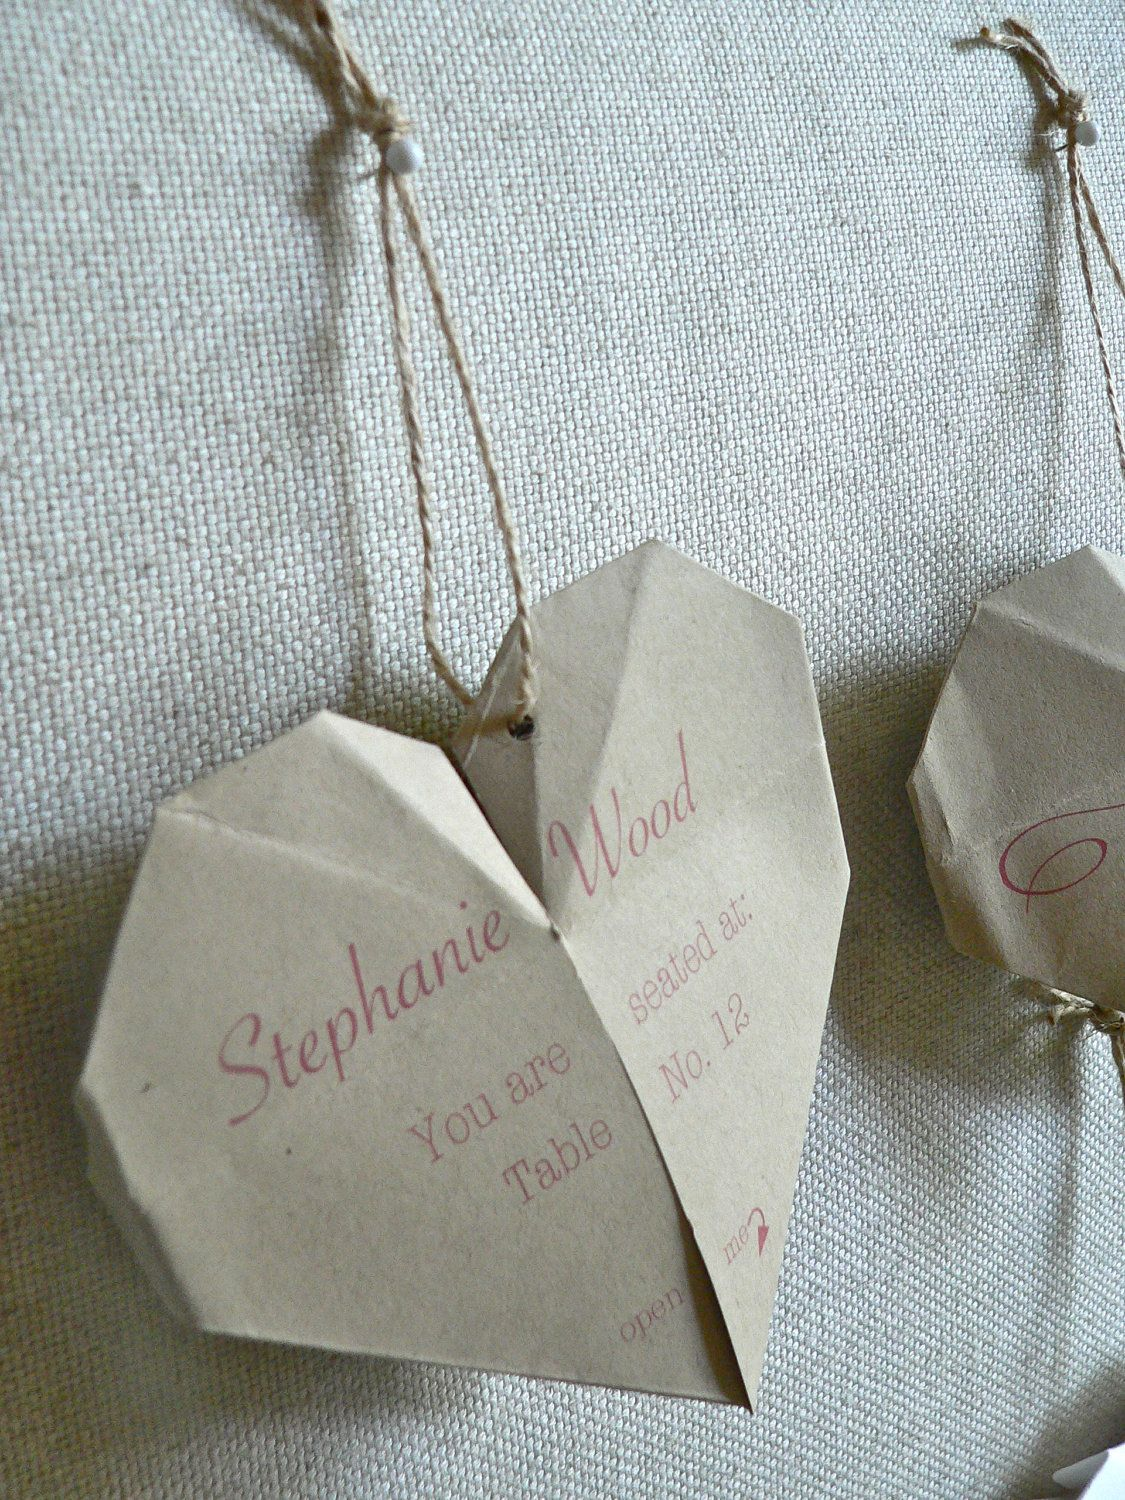 Origami Heart Wedding Escort Cards with Special Message to Guests on Inside - set of 50. $60.00, via Etsy.